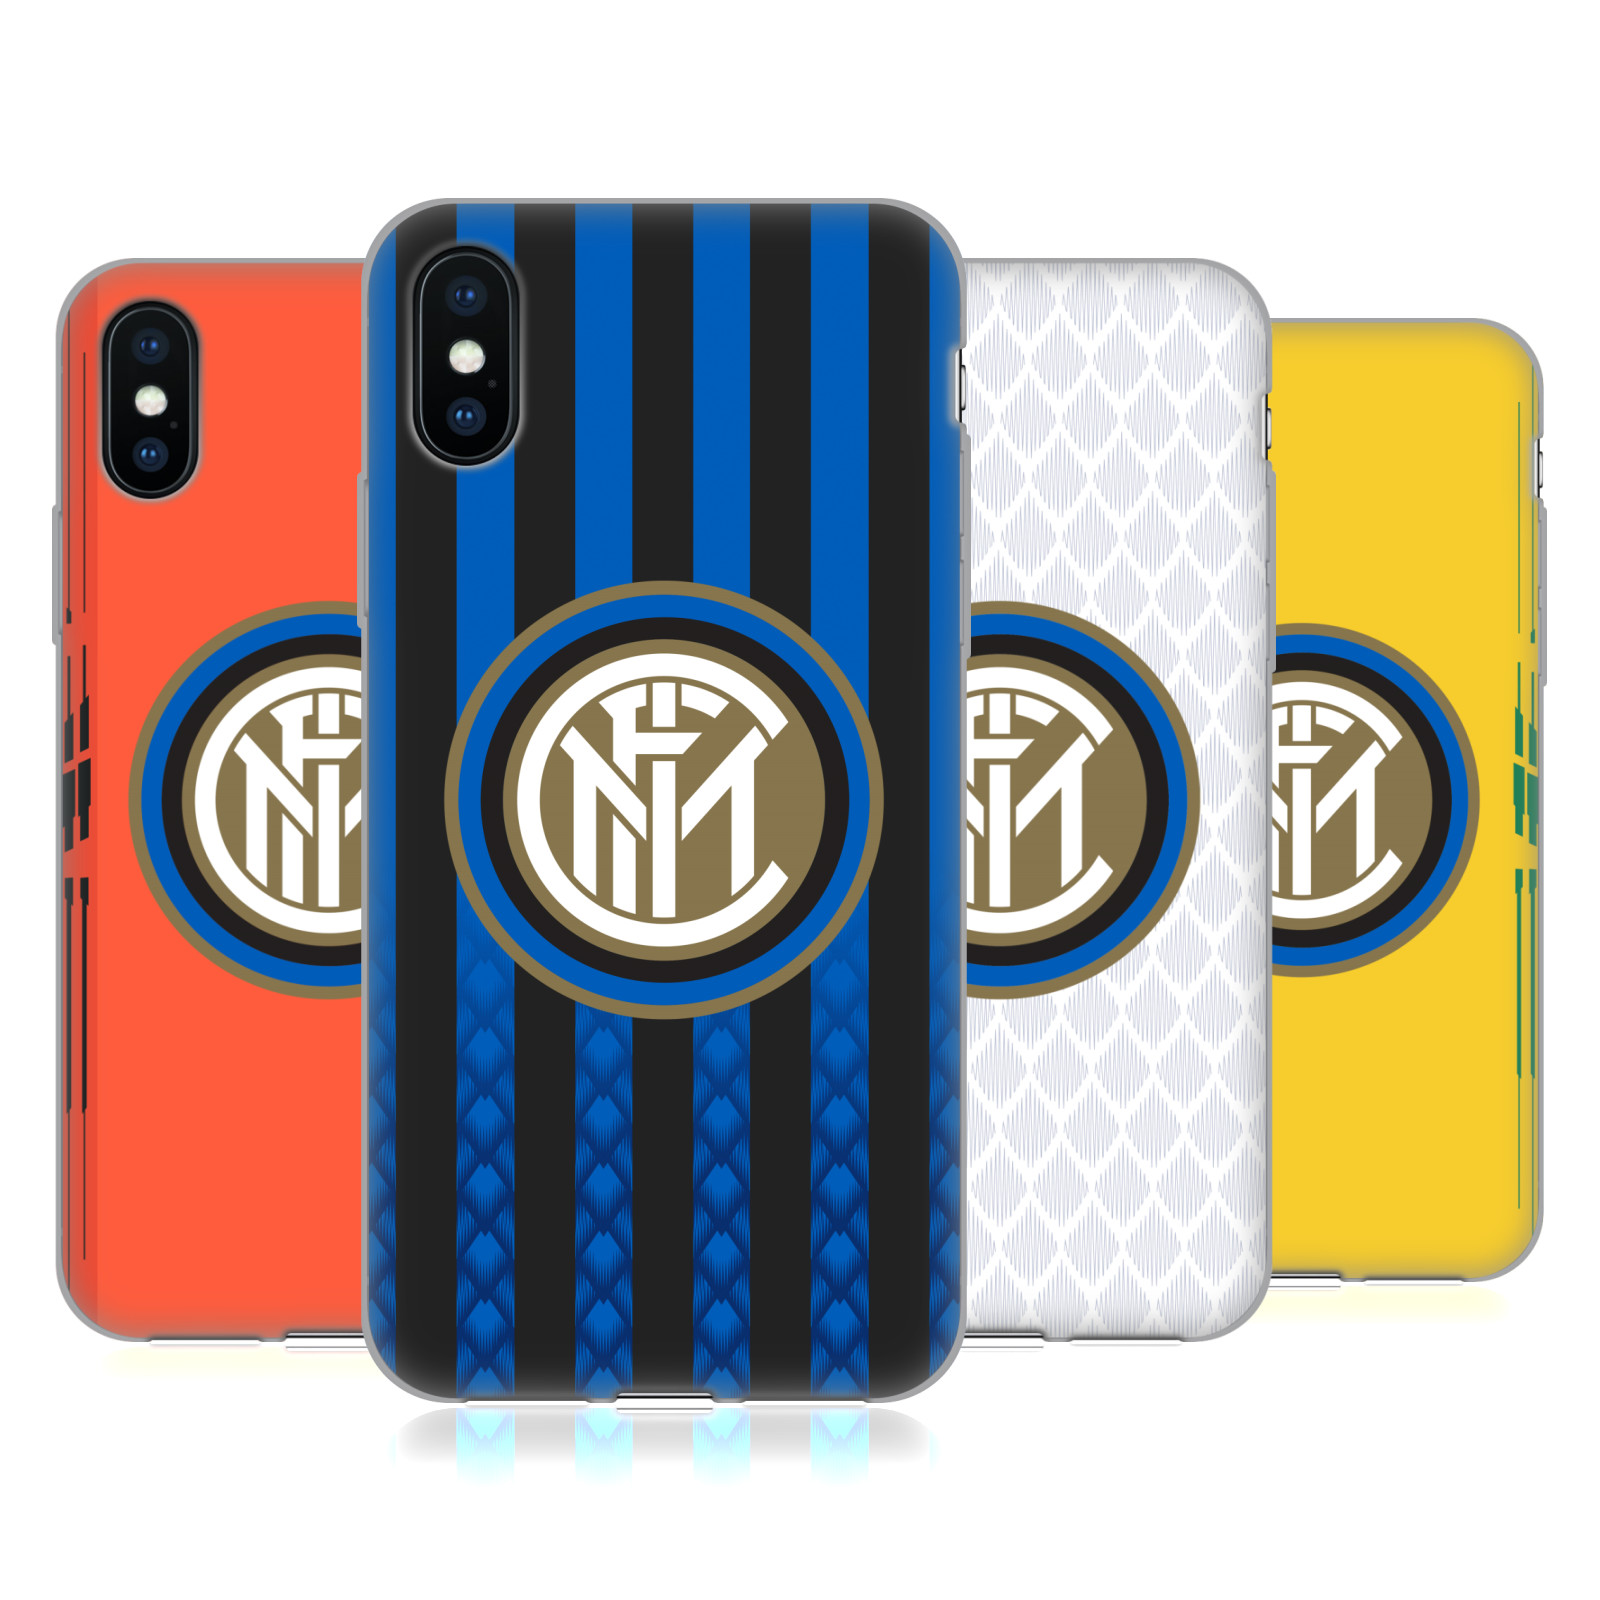 Inter Milan <!--translate-lineup-->2018/19 Crest Kit<!--translate-lineup-->